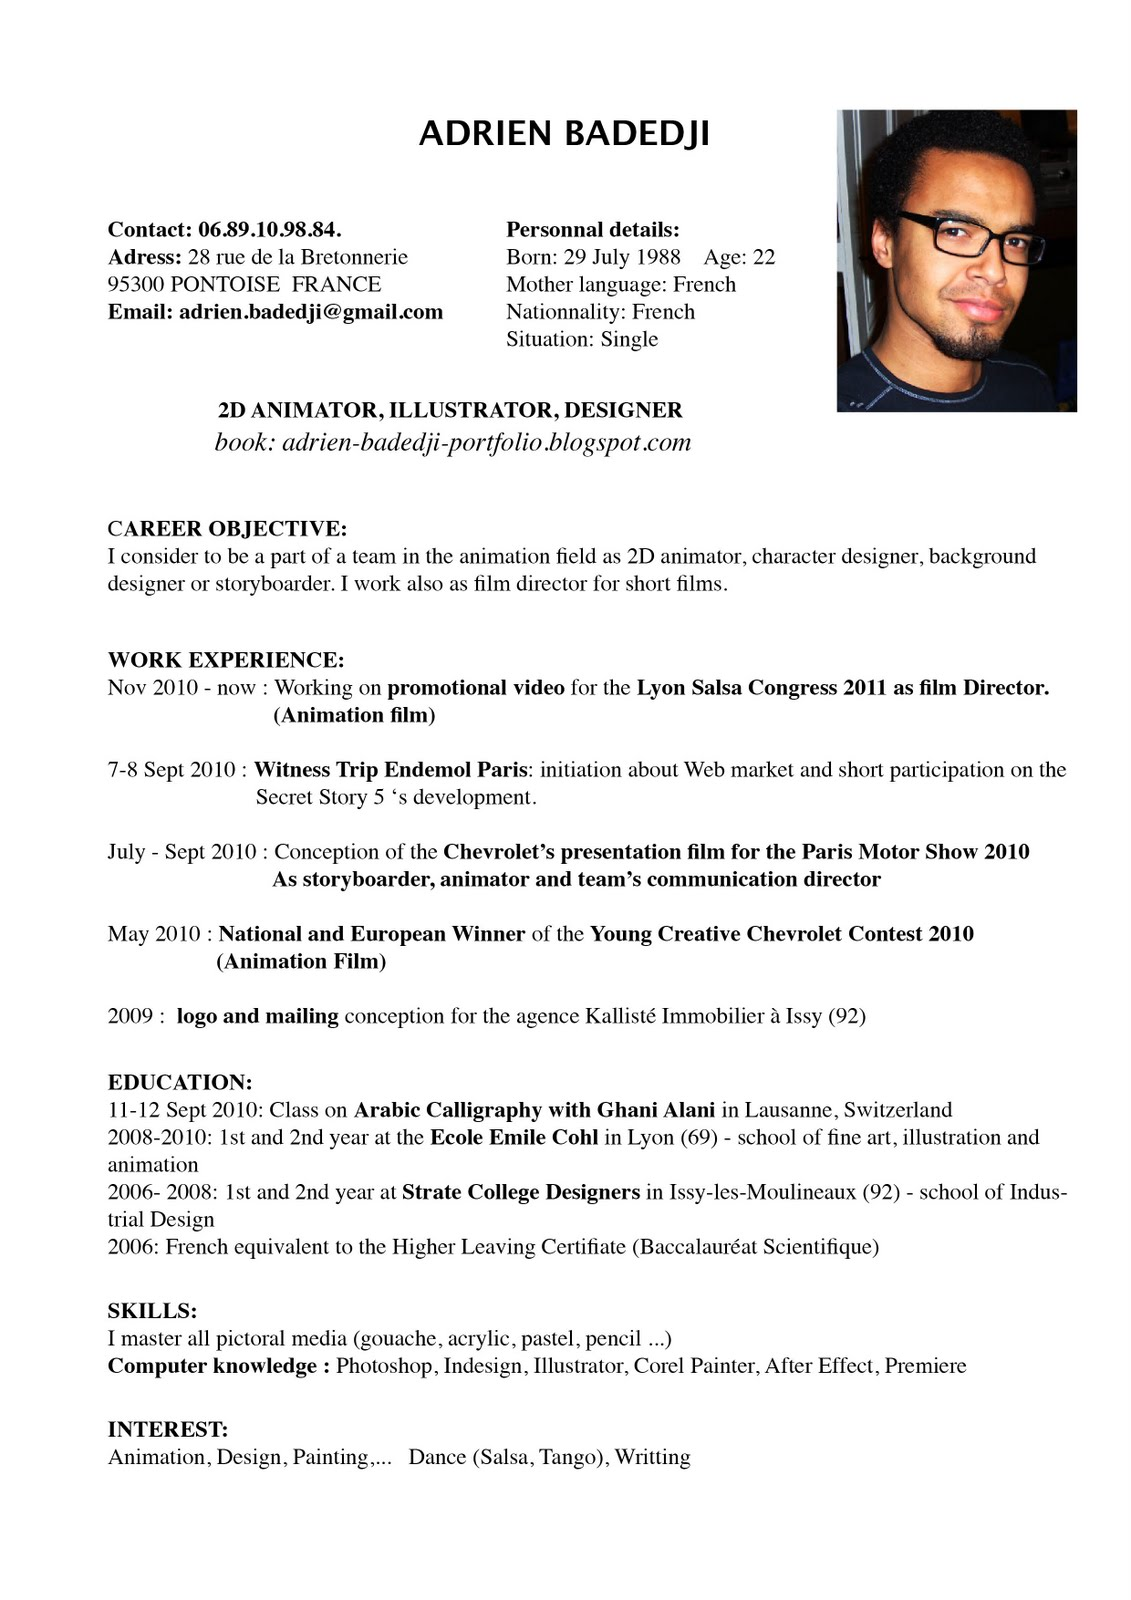 curriculum vitae in english examples - Template